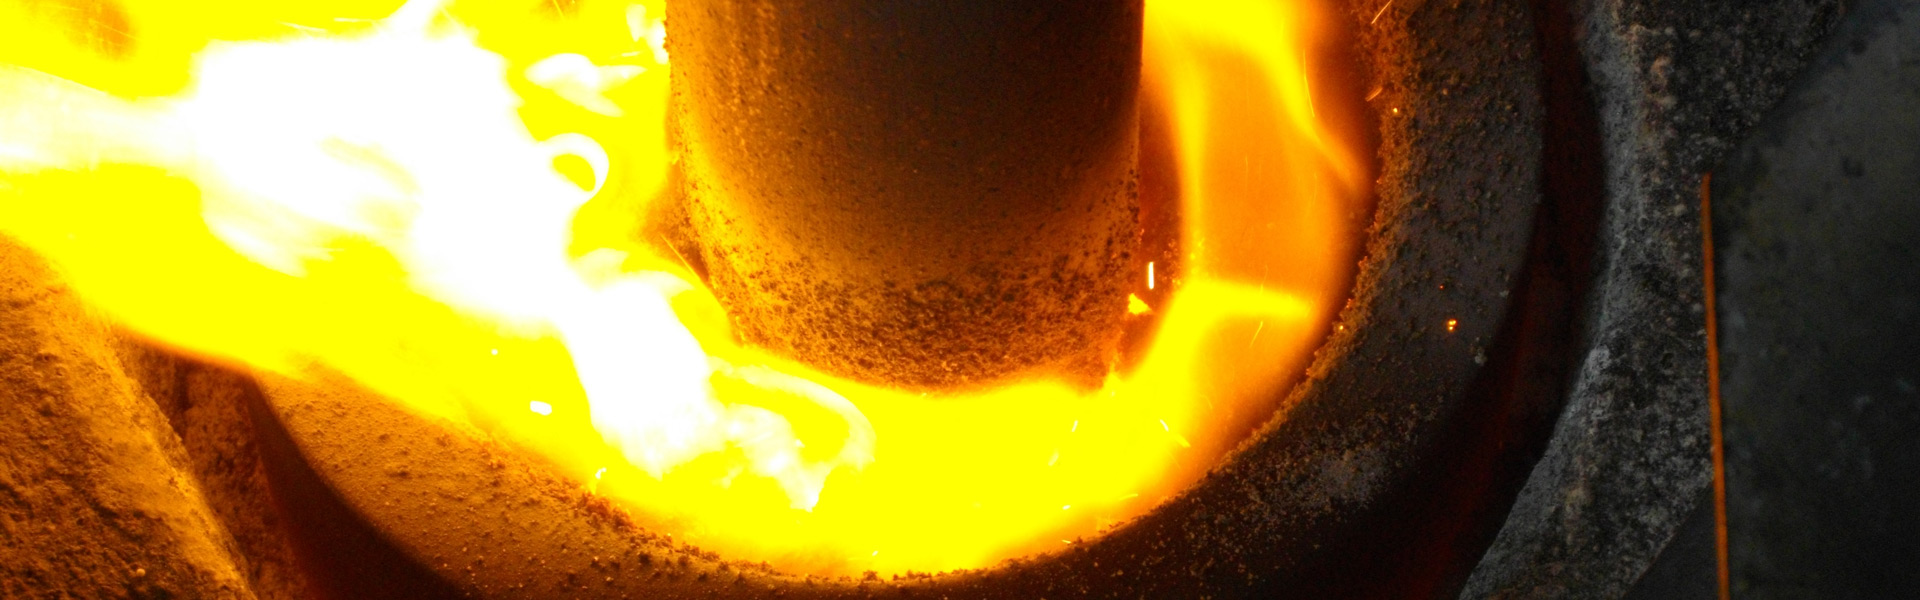 carbothermic production of AlSi alloy in an electric arc furnace